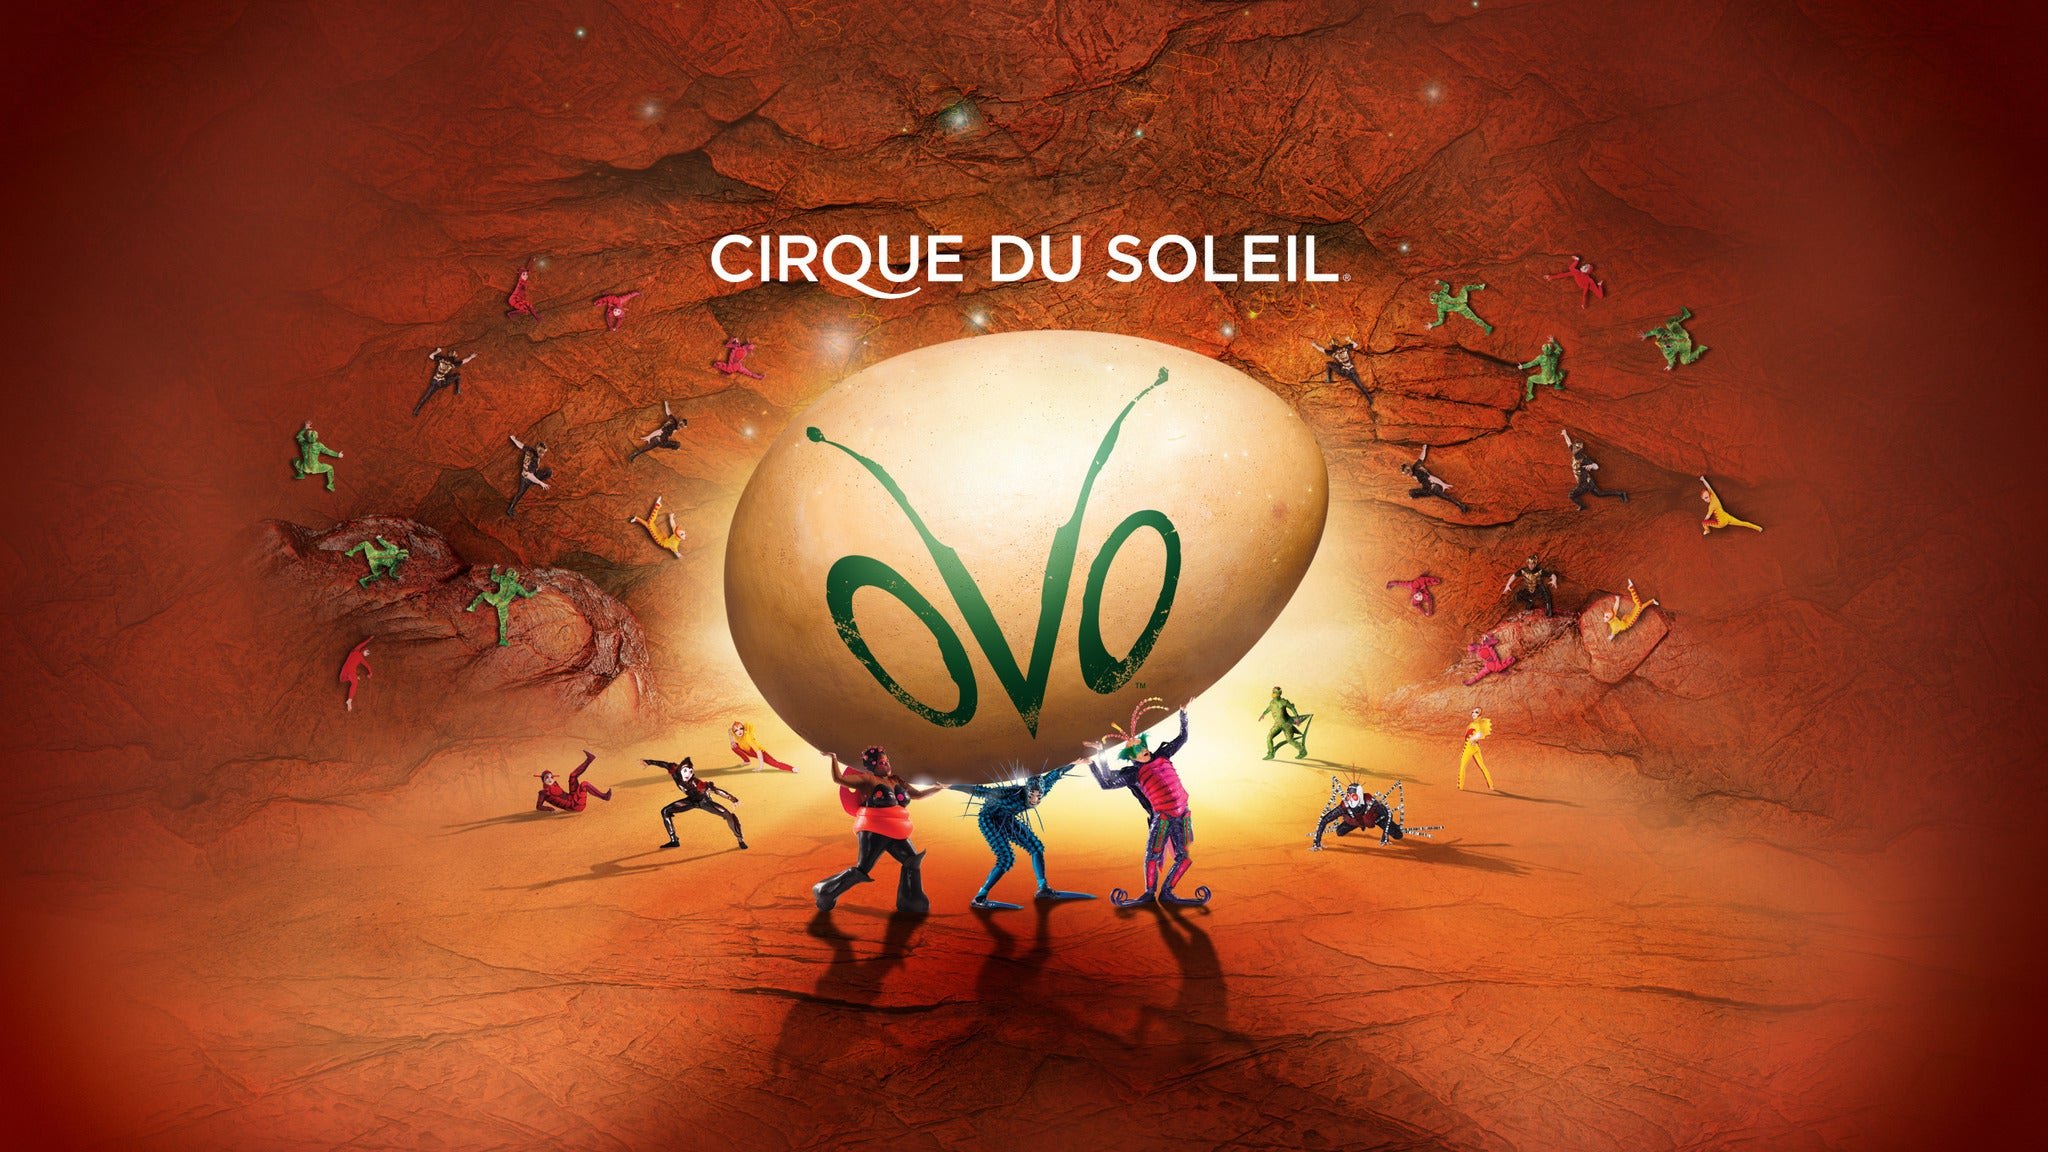 Cirque du Soleil: OVO at Von Braun Center Arena